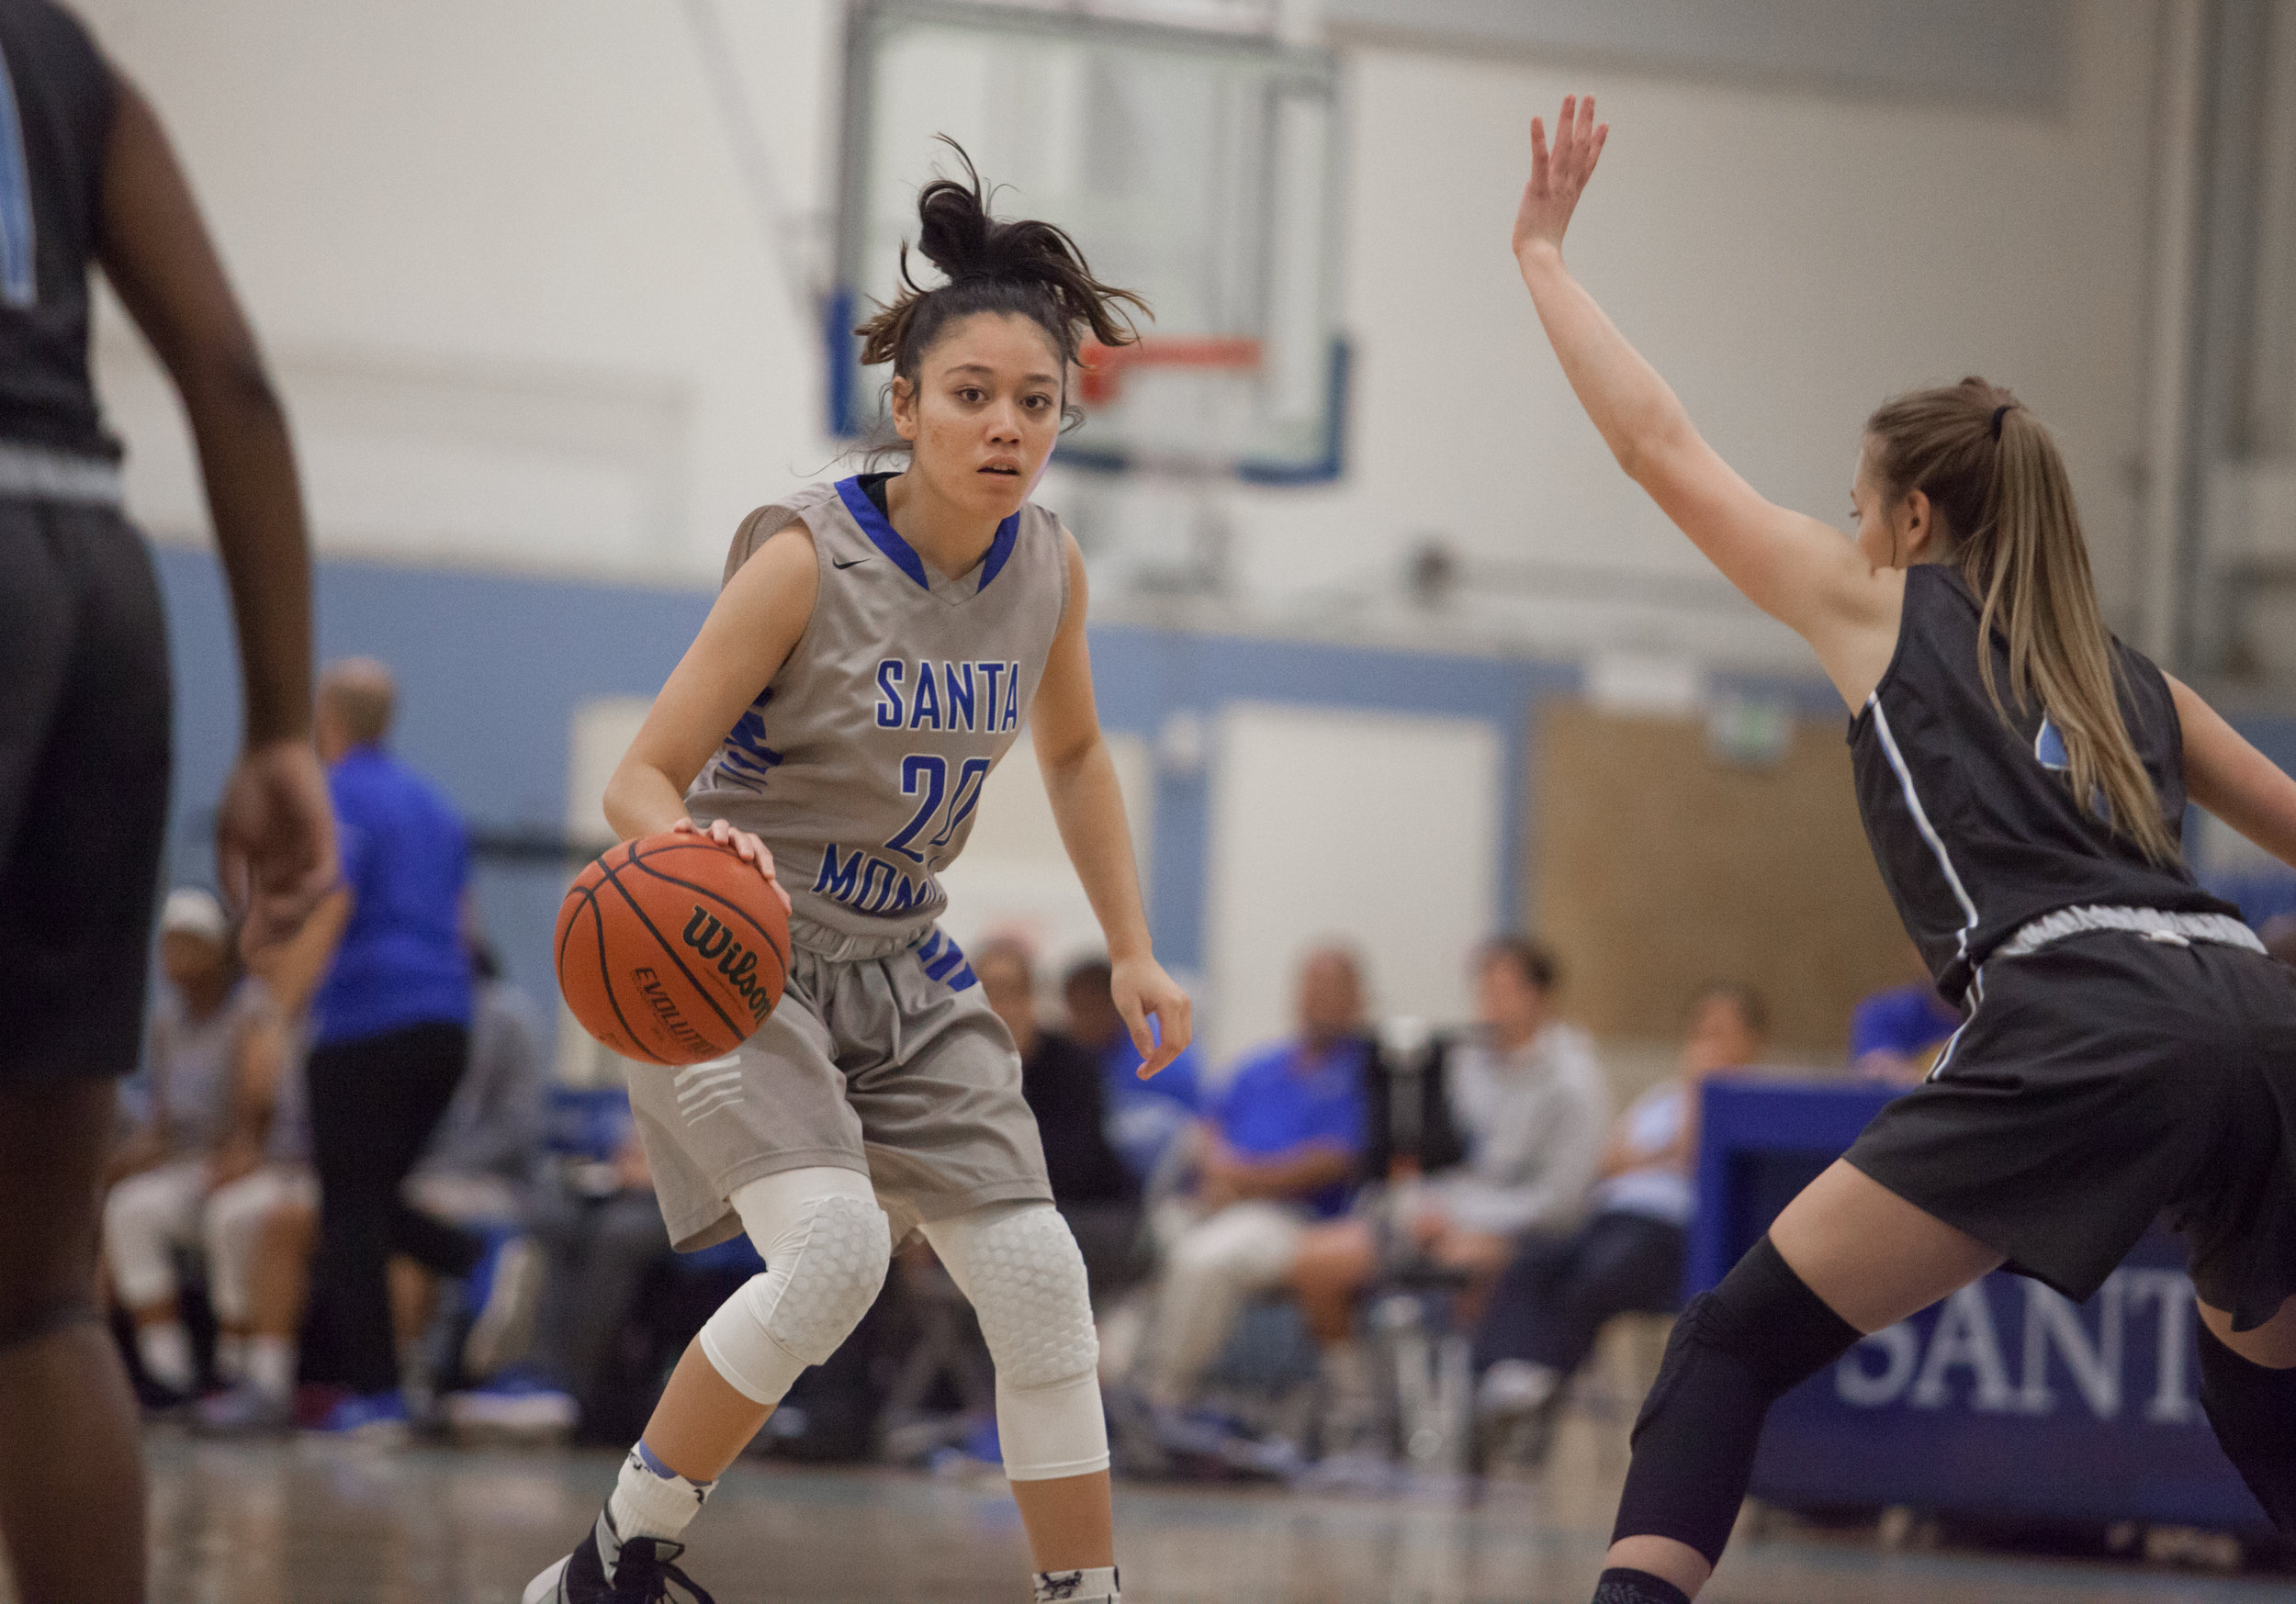 Maylene Cabral (20) of the Santa Monica College looks for an opening to create a shot while being defended by guard Kasey Nilsen (4) of the Moonpark College. The Santa Monica College Corsairs loss the home game 52-69 against the Moonpark College. The game held on Saturday, December 9th, 2017 at Santa Monica College Pavilion at Santa Monica College Main Campus in Santa Monica, California. (Photo by Elena Rybina)